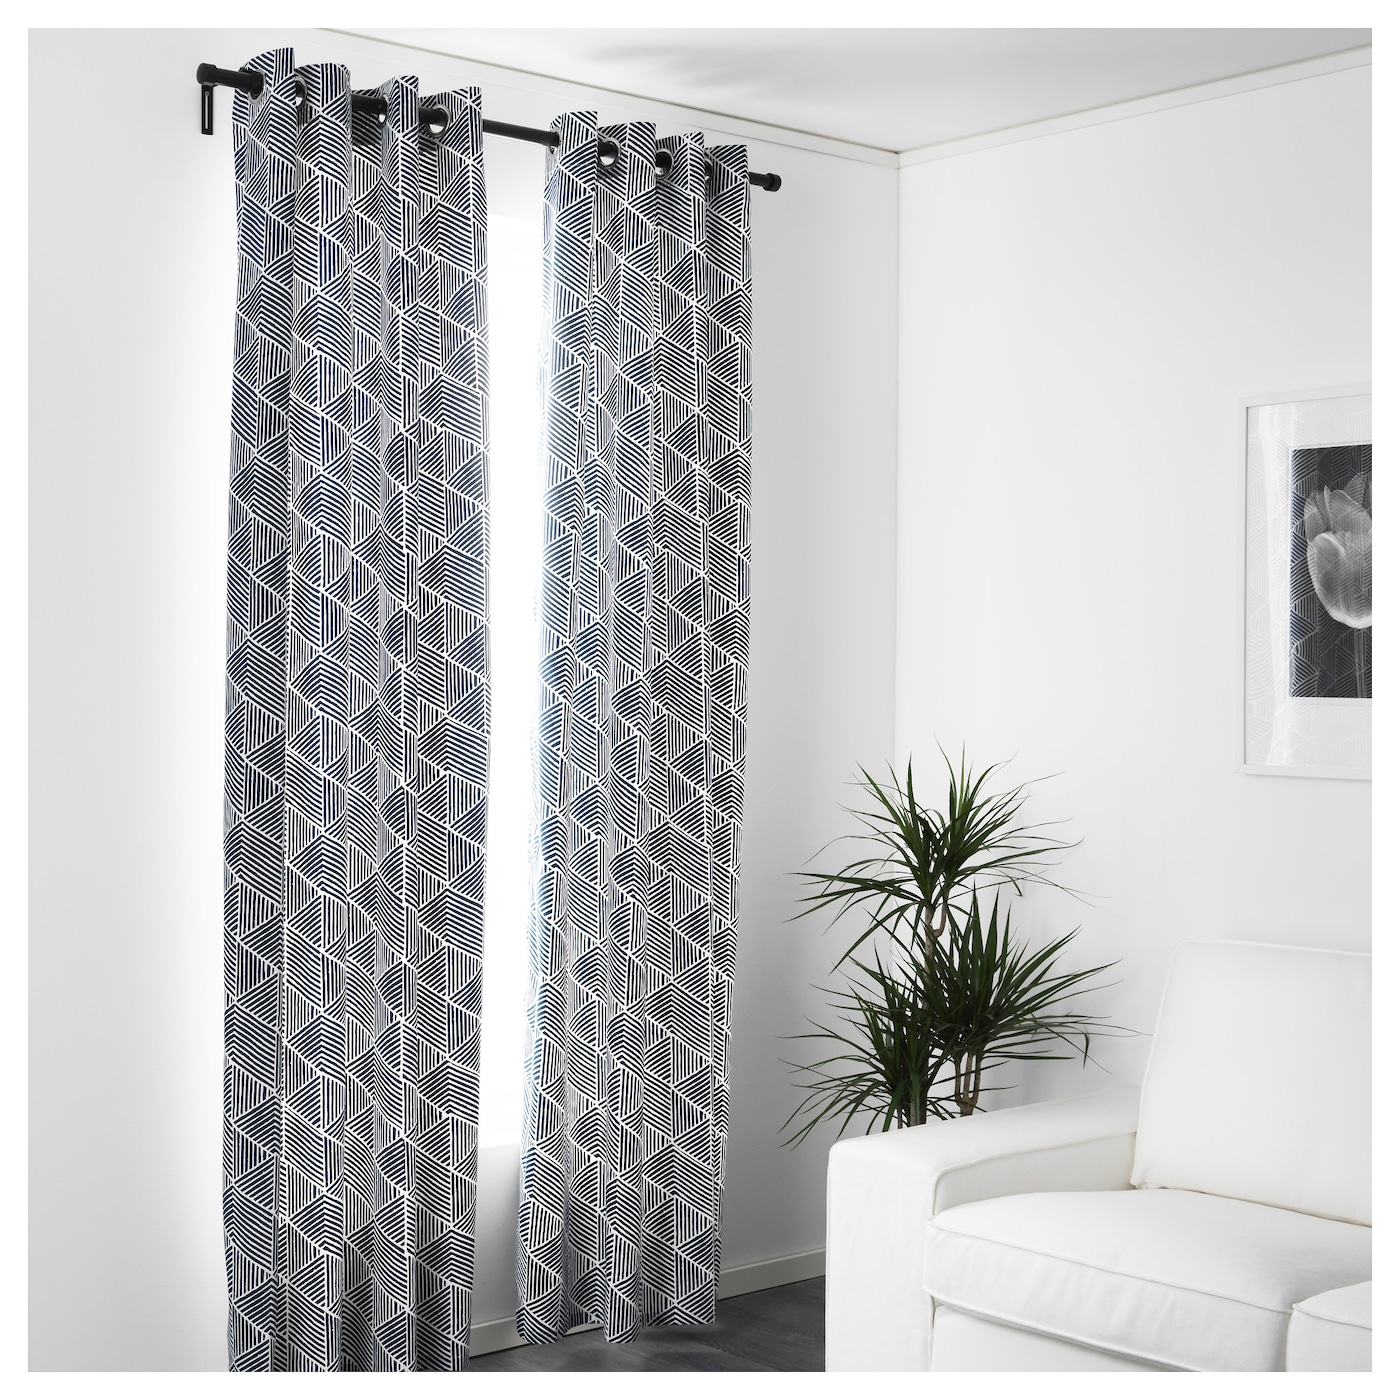 IKEA NUNNERÖRT curtains, 1 pair